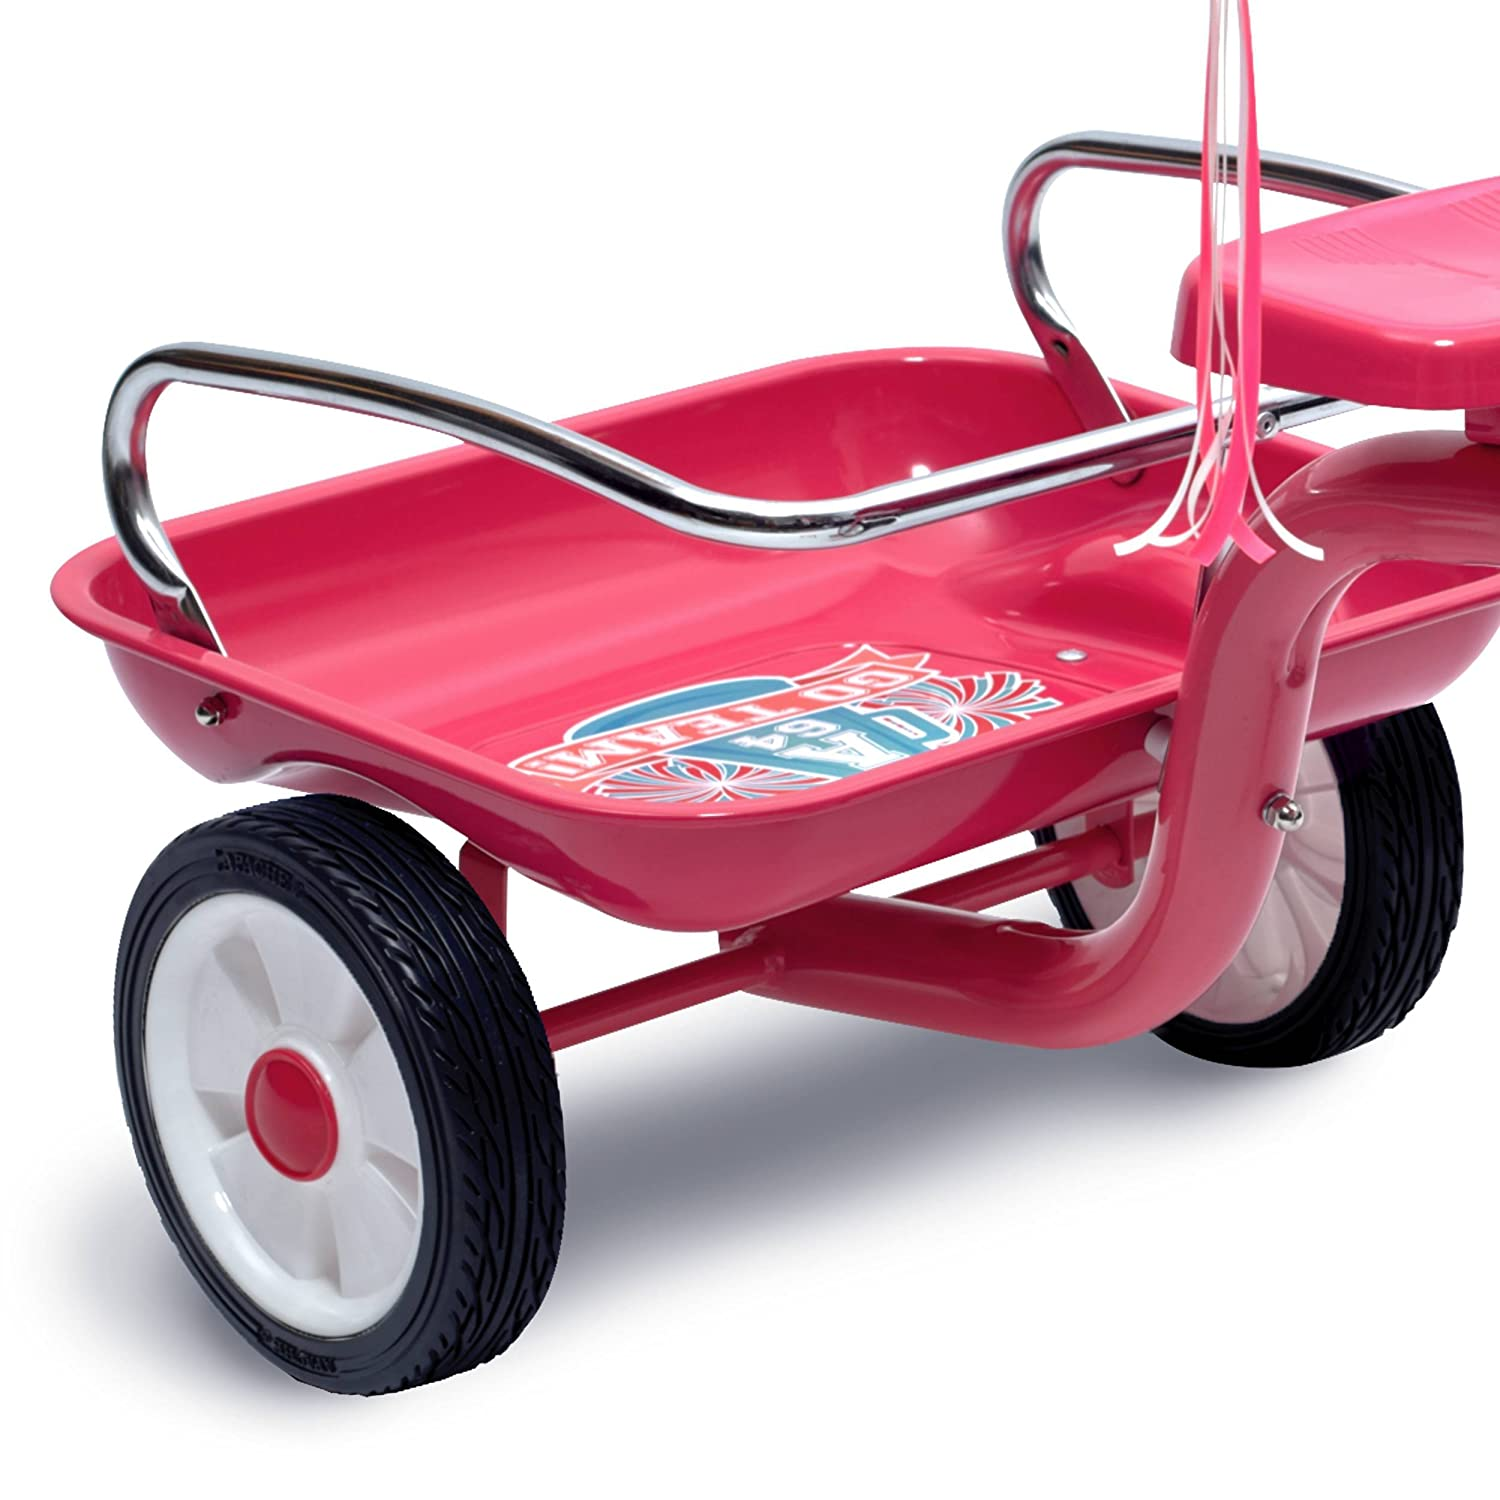 27cec694fa0d4 Amazon.com: Apache Classic Cheerleader Trike: Toys & Games